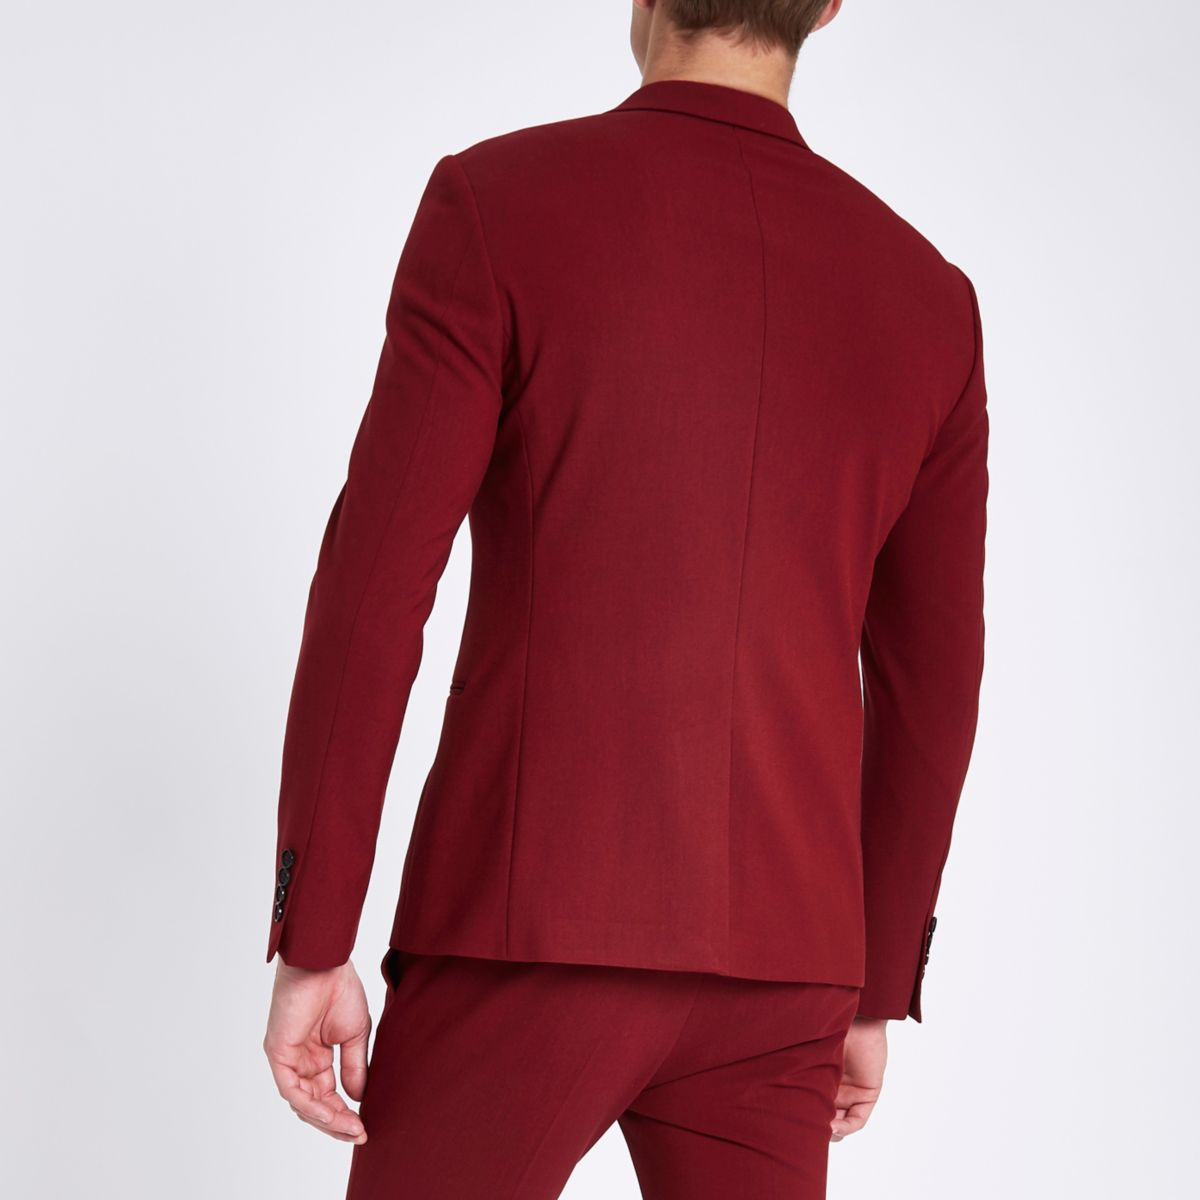 jacket skinny super Red fit suit w4aWOq7K